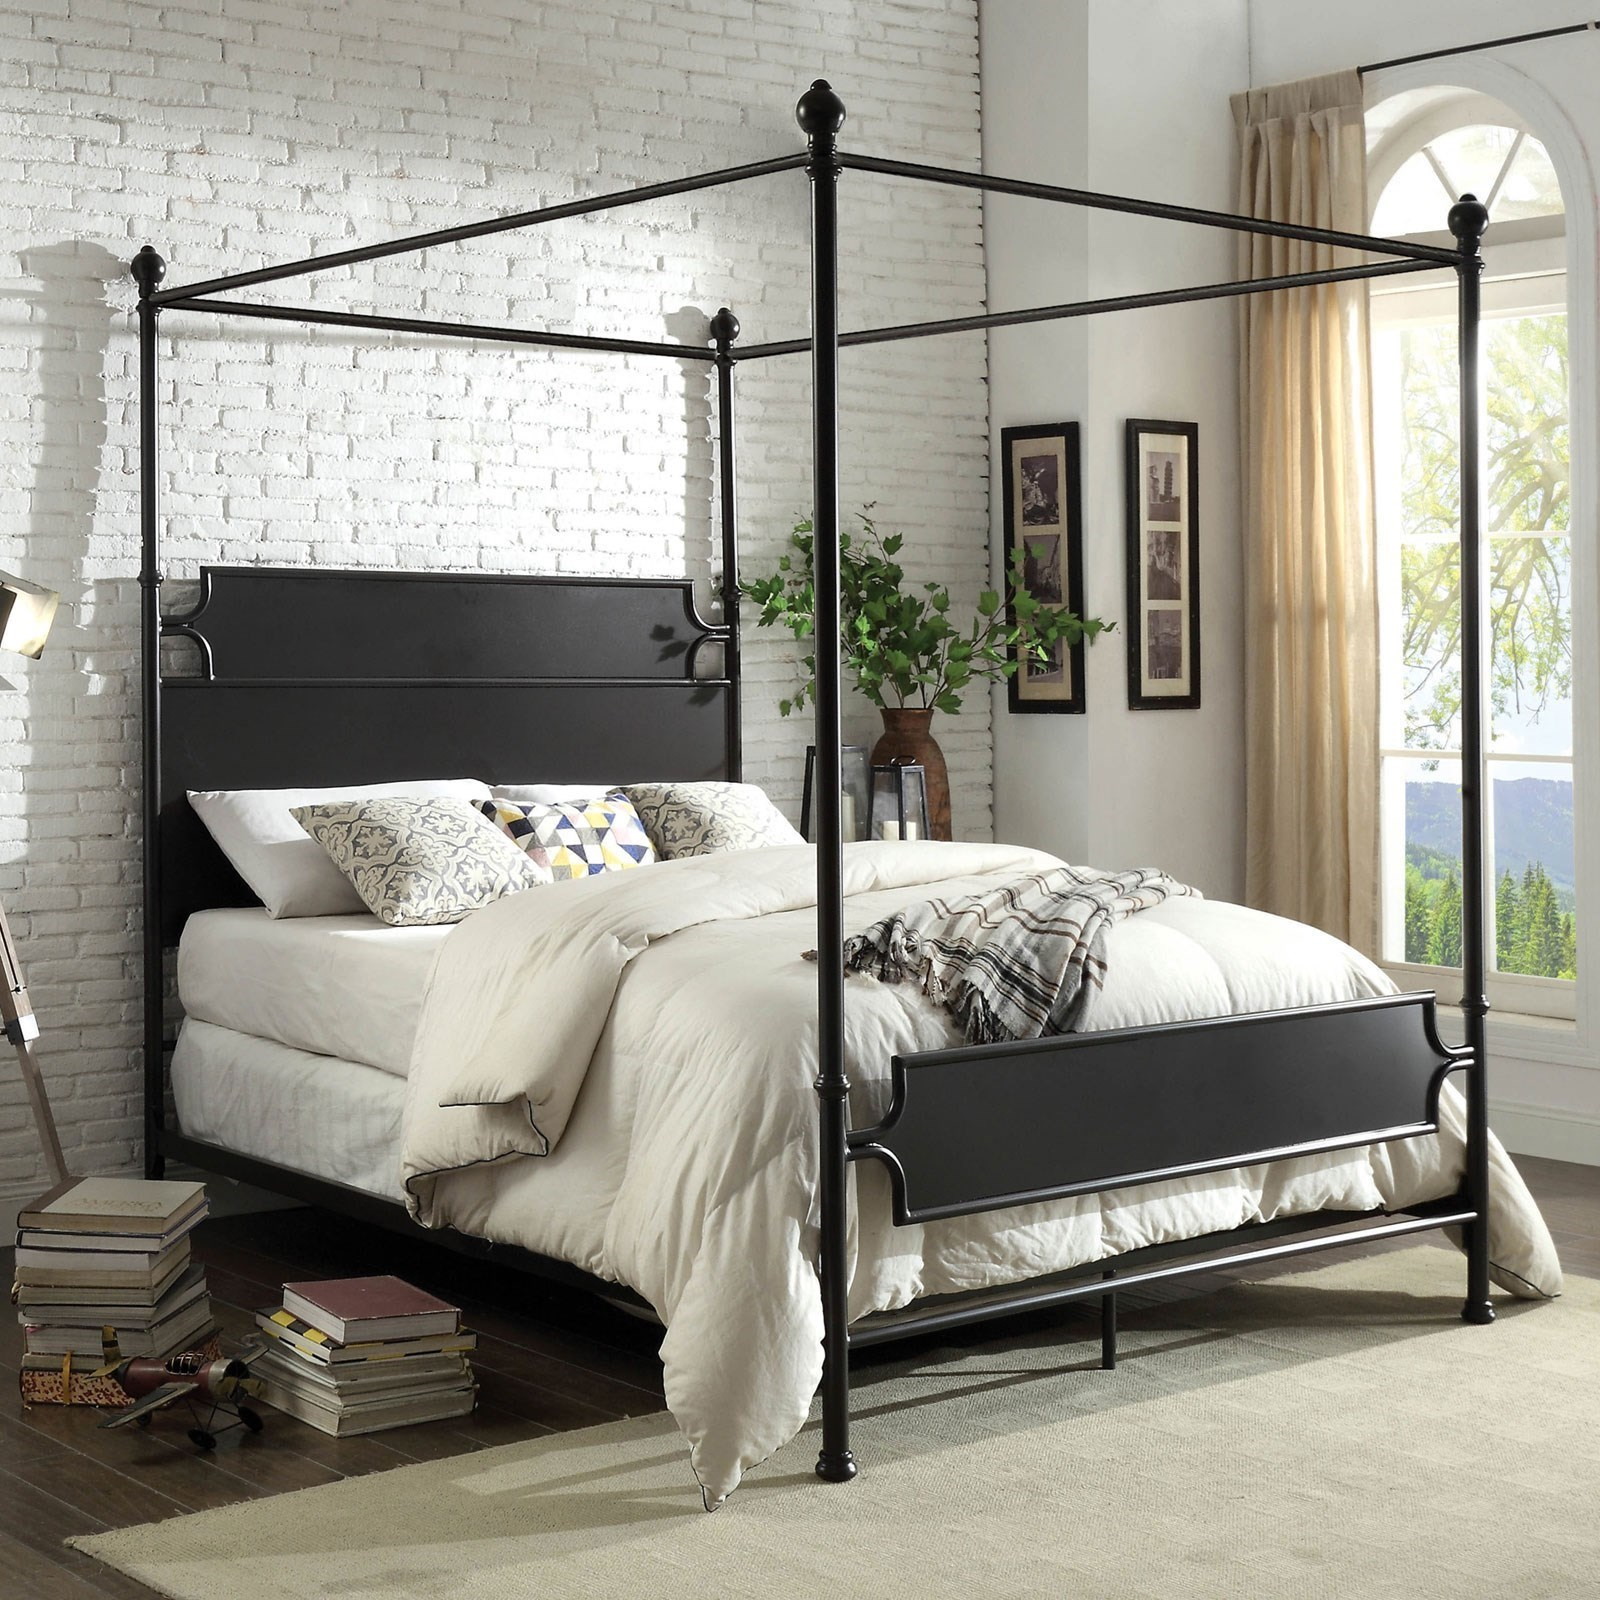 Beatrix California King Bed at Household Furniture